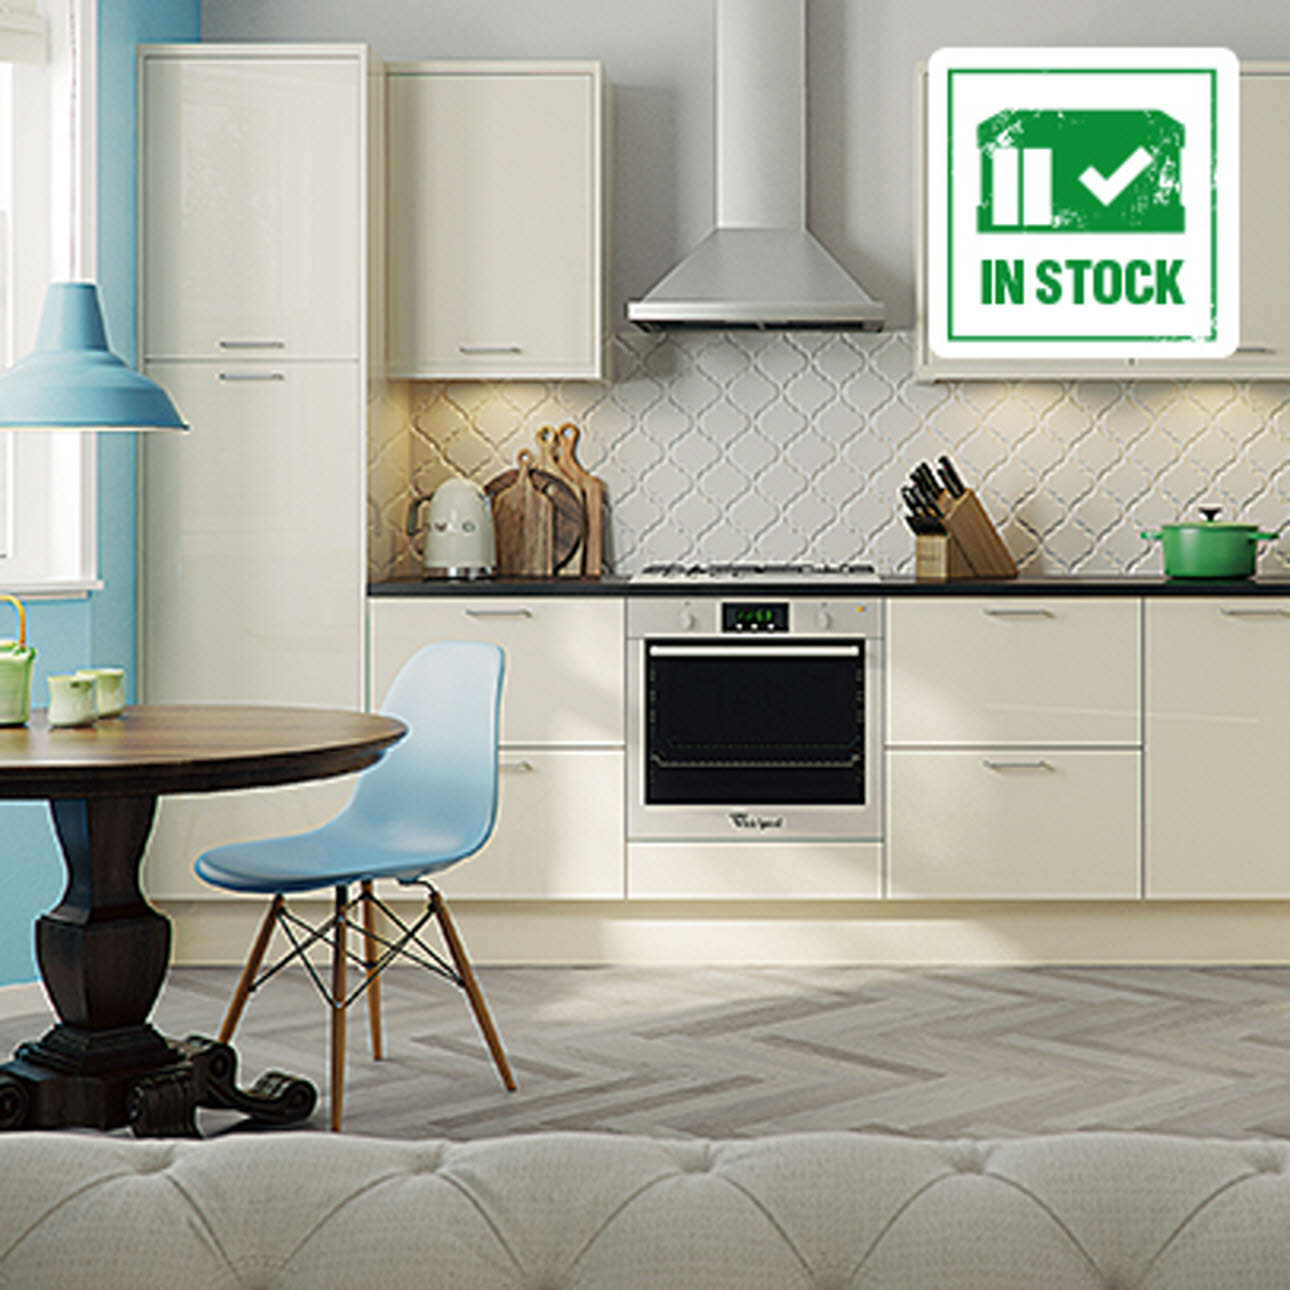 Our Range Of In Stock Kitchens